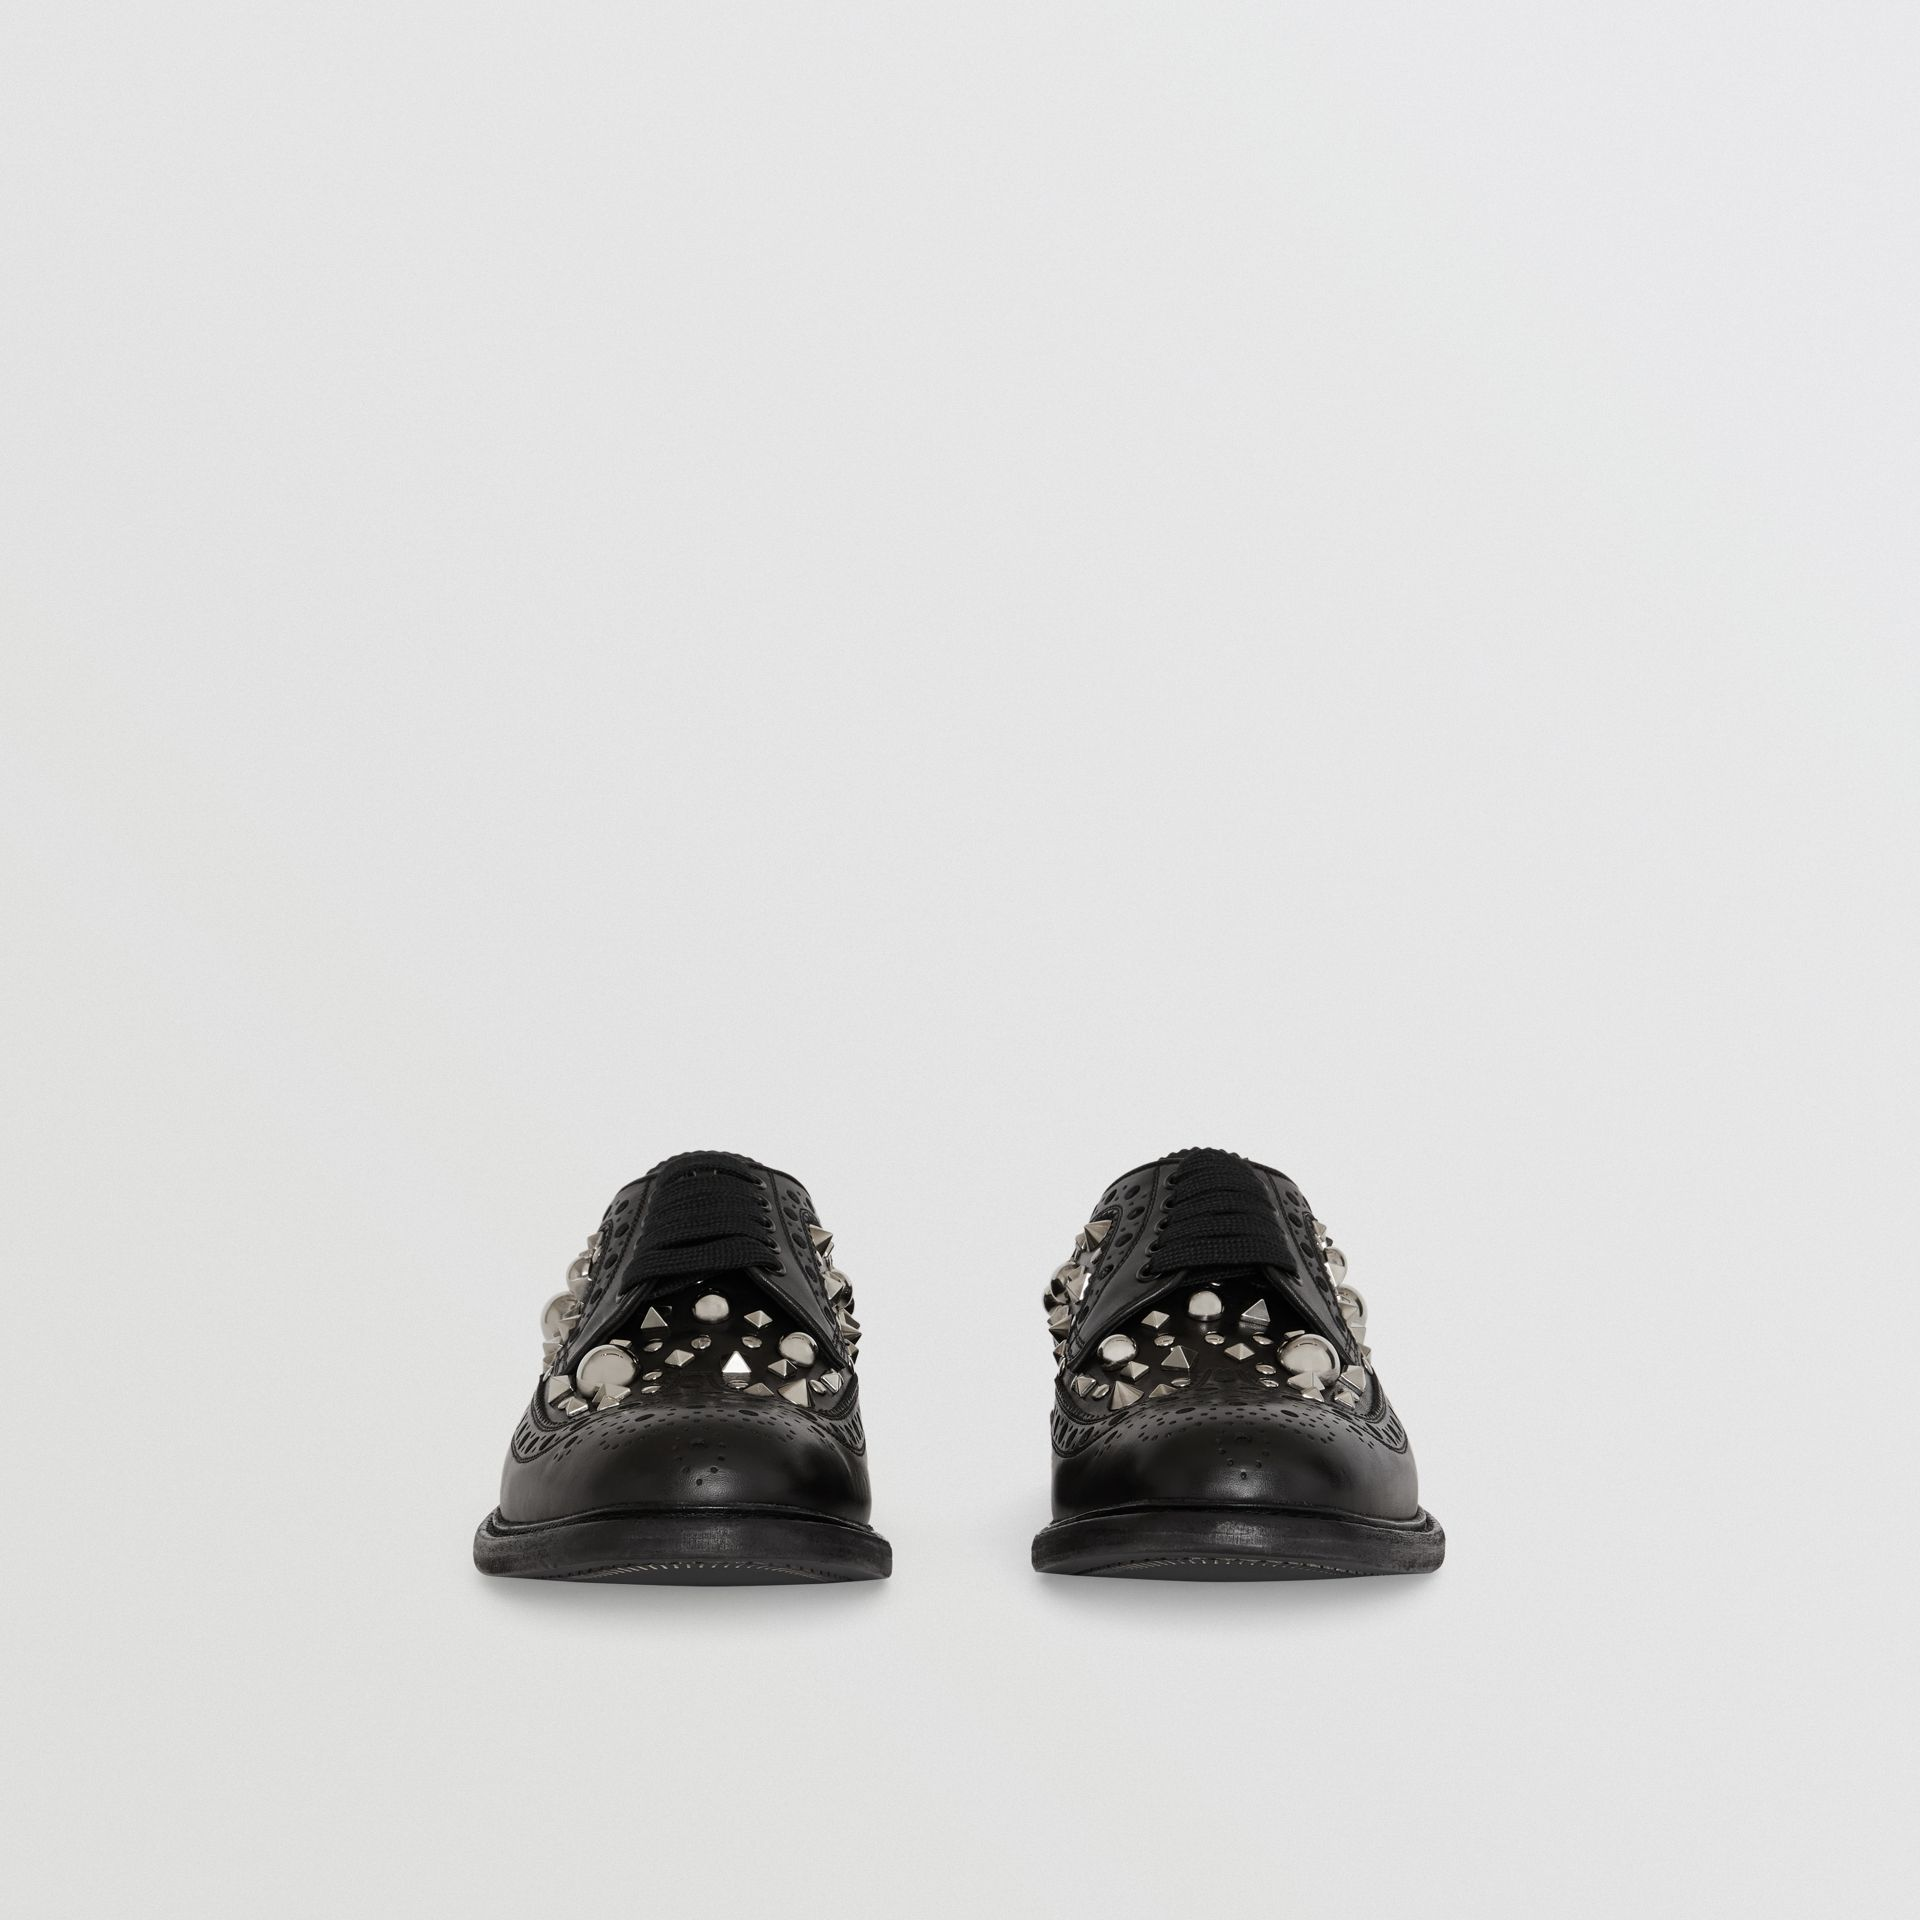 Stud Detail Leather Brogues in Black - Men | Burberry Hong Kong - gallery image 3